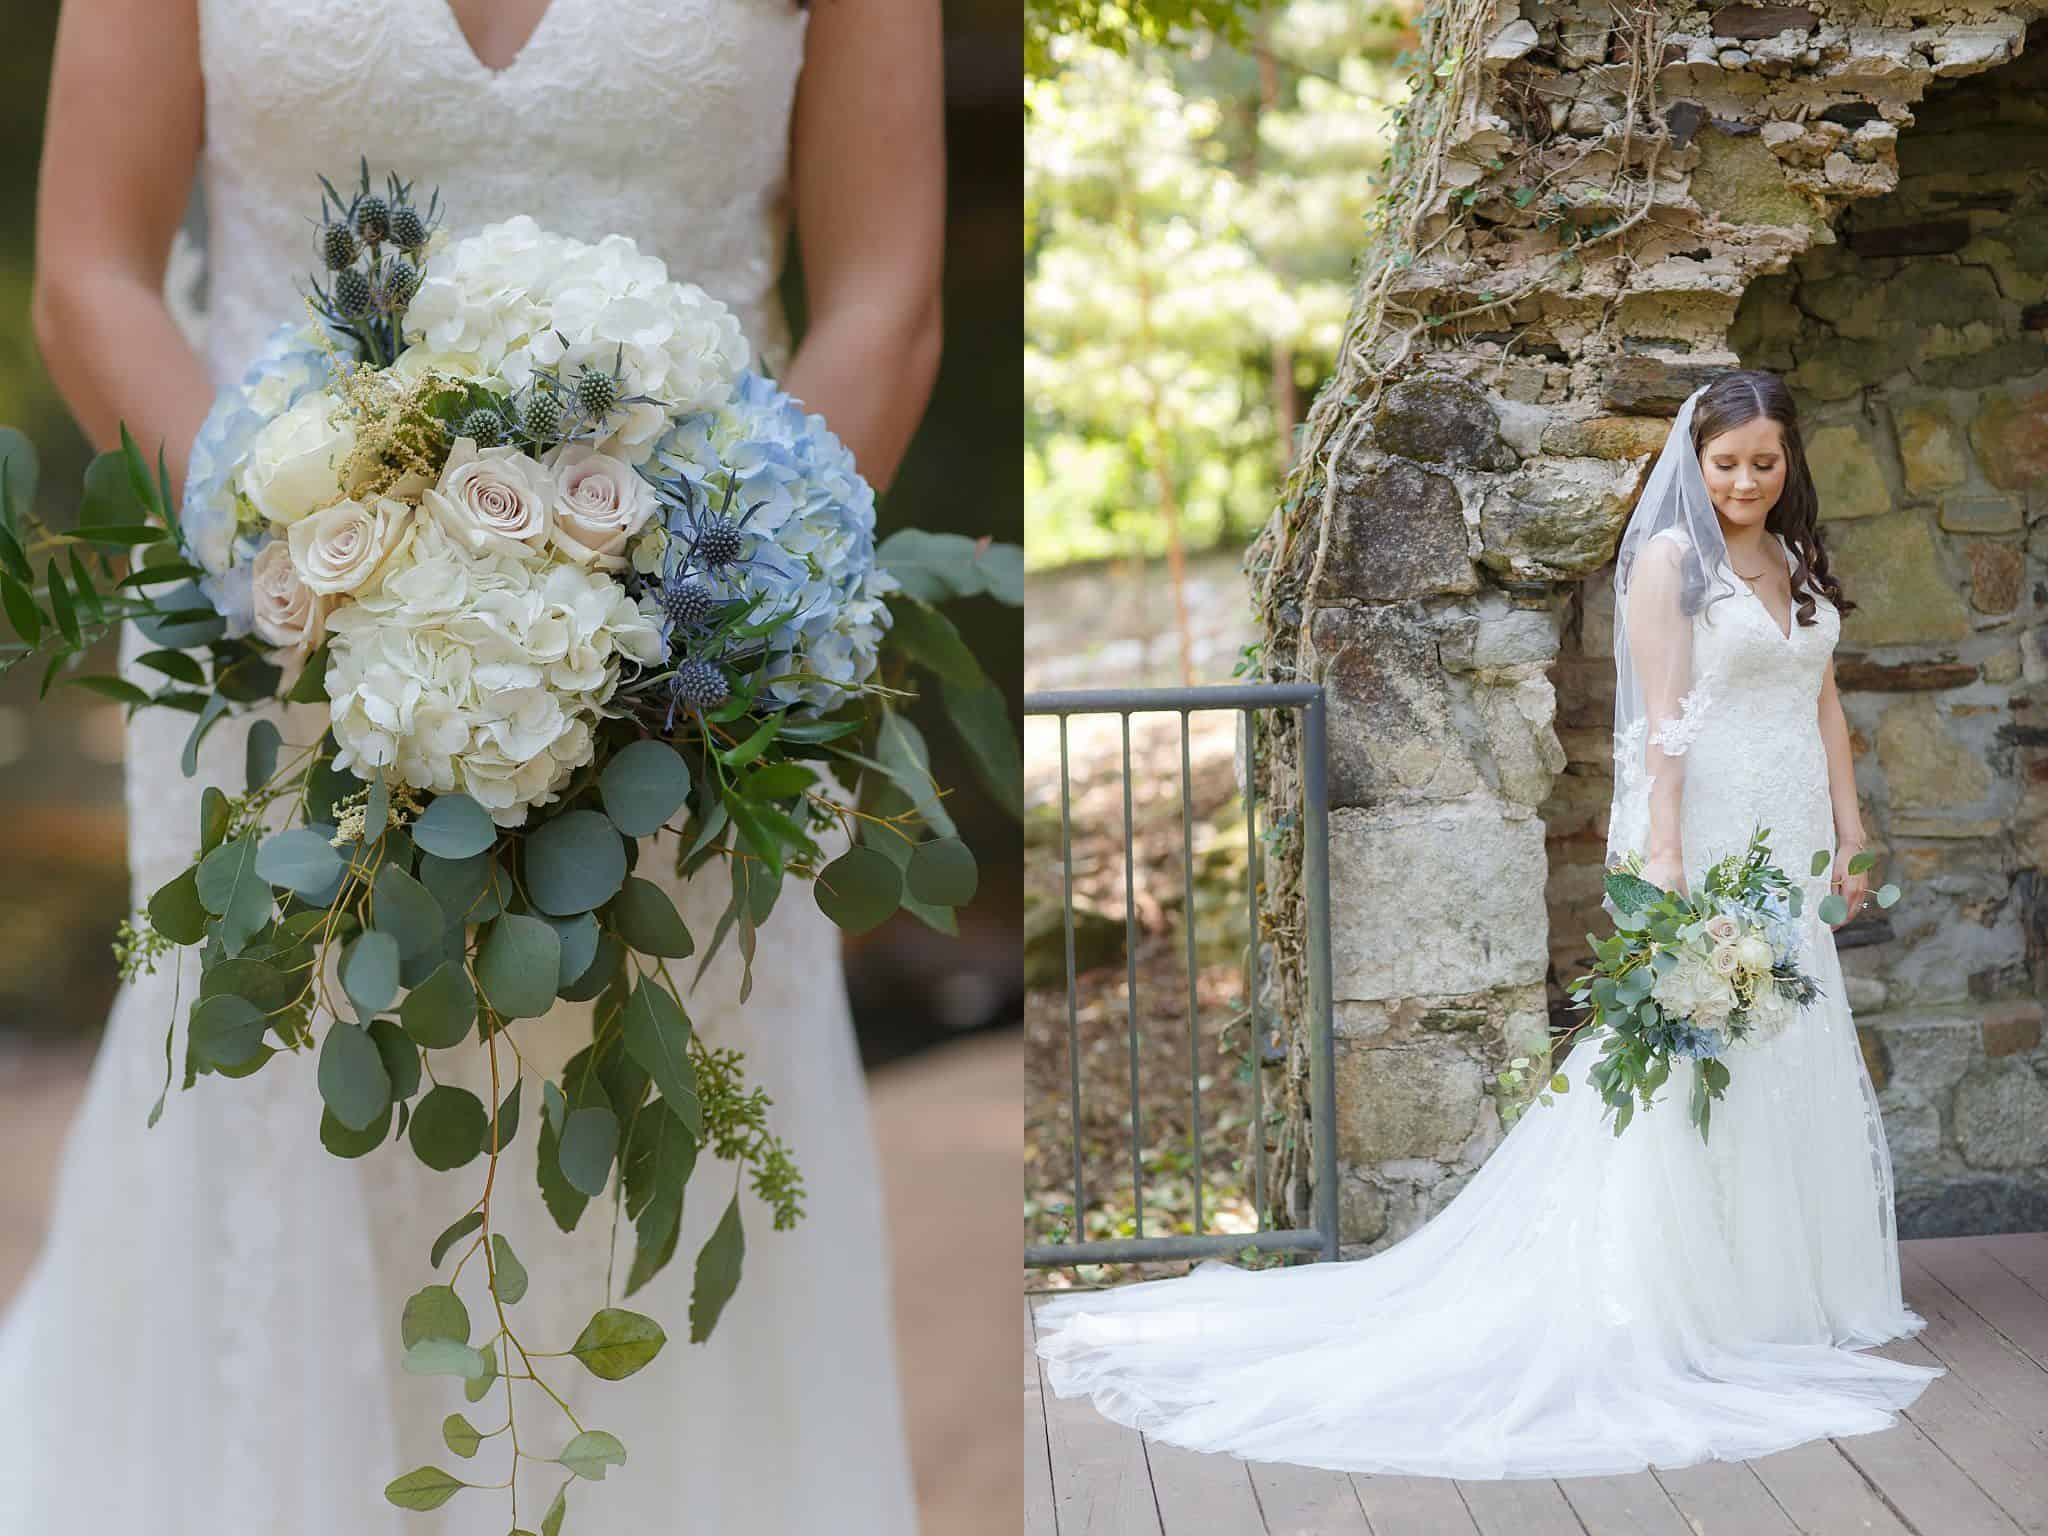 Bridal Bouquet with blue and cream hydrangeas, blush and ivory roses, blue thistle and eucalyptus and posing in front of chimney